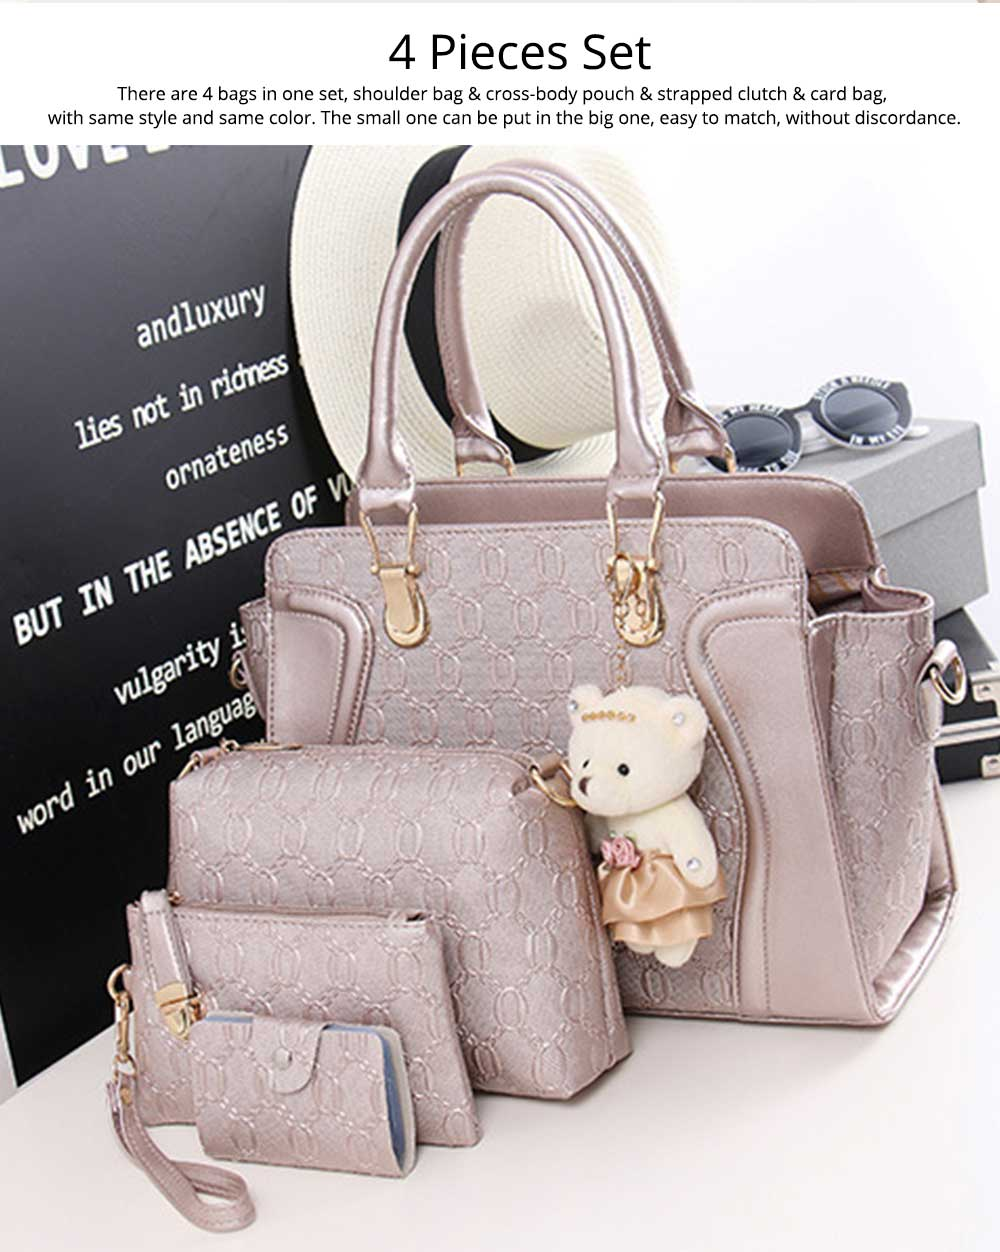 Elegant Women Accessories Ellipse Chain PU Leather Lady Tote Bag Sets 4PCS 1